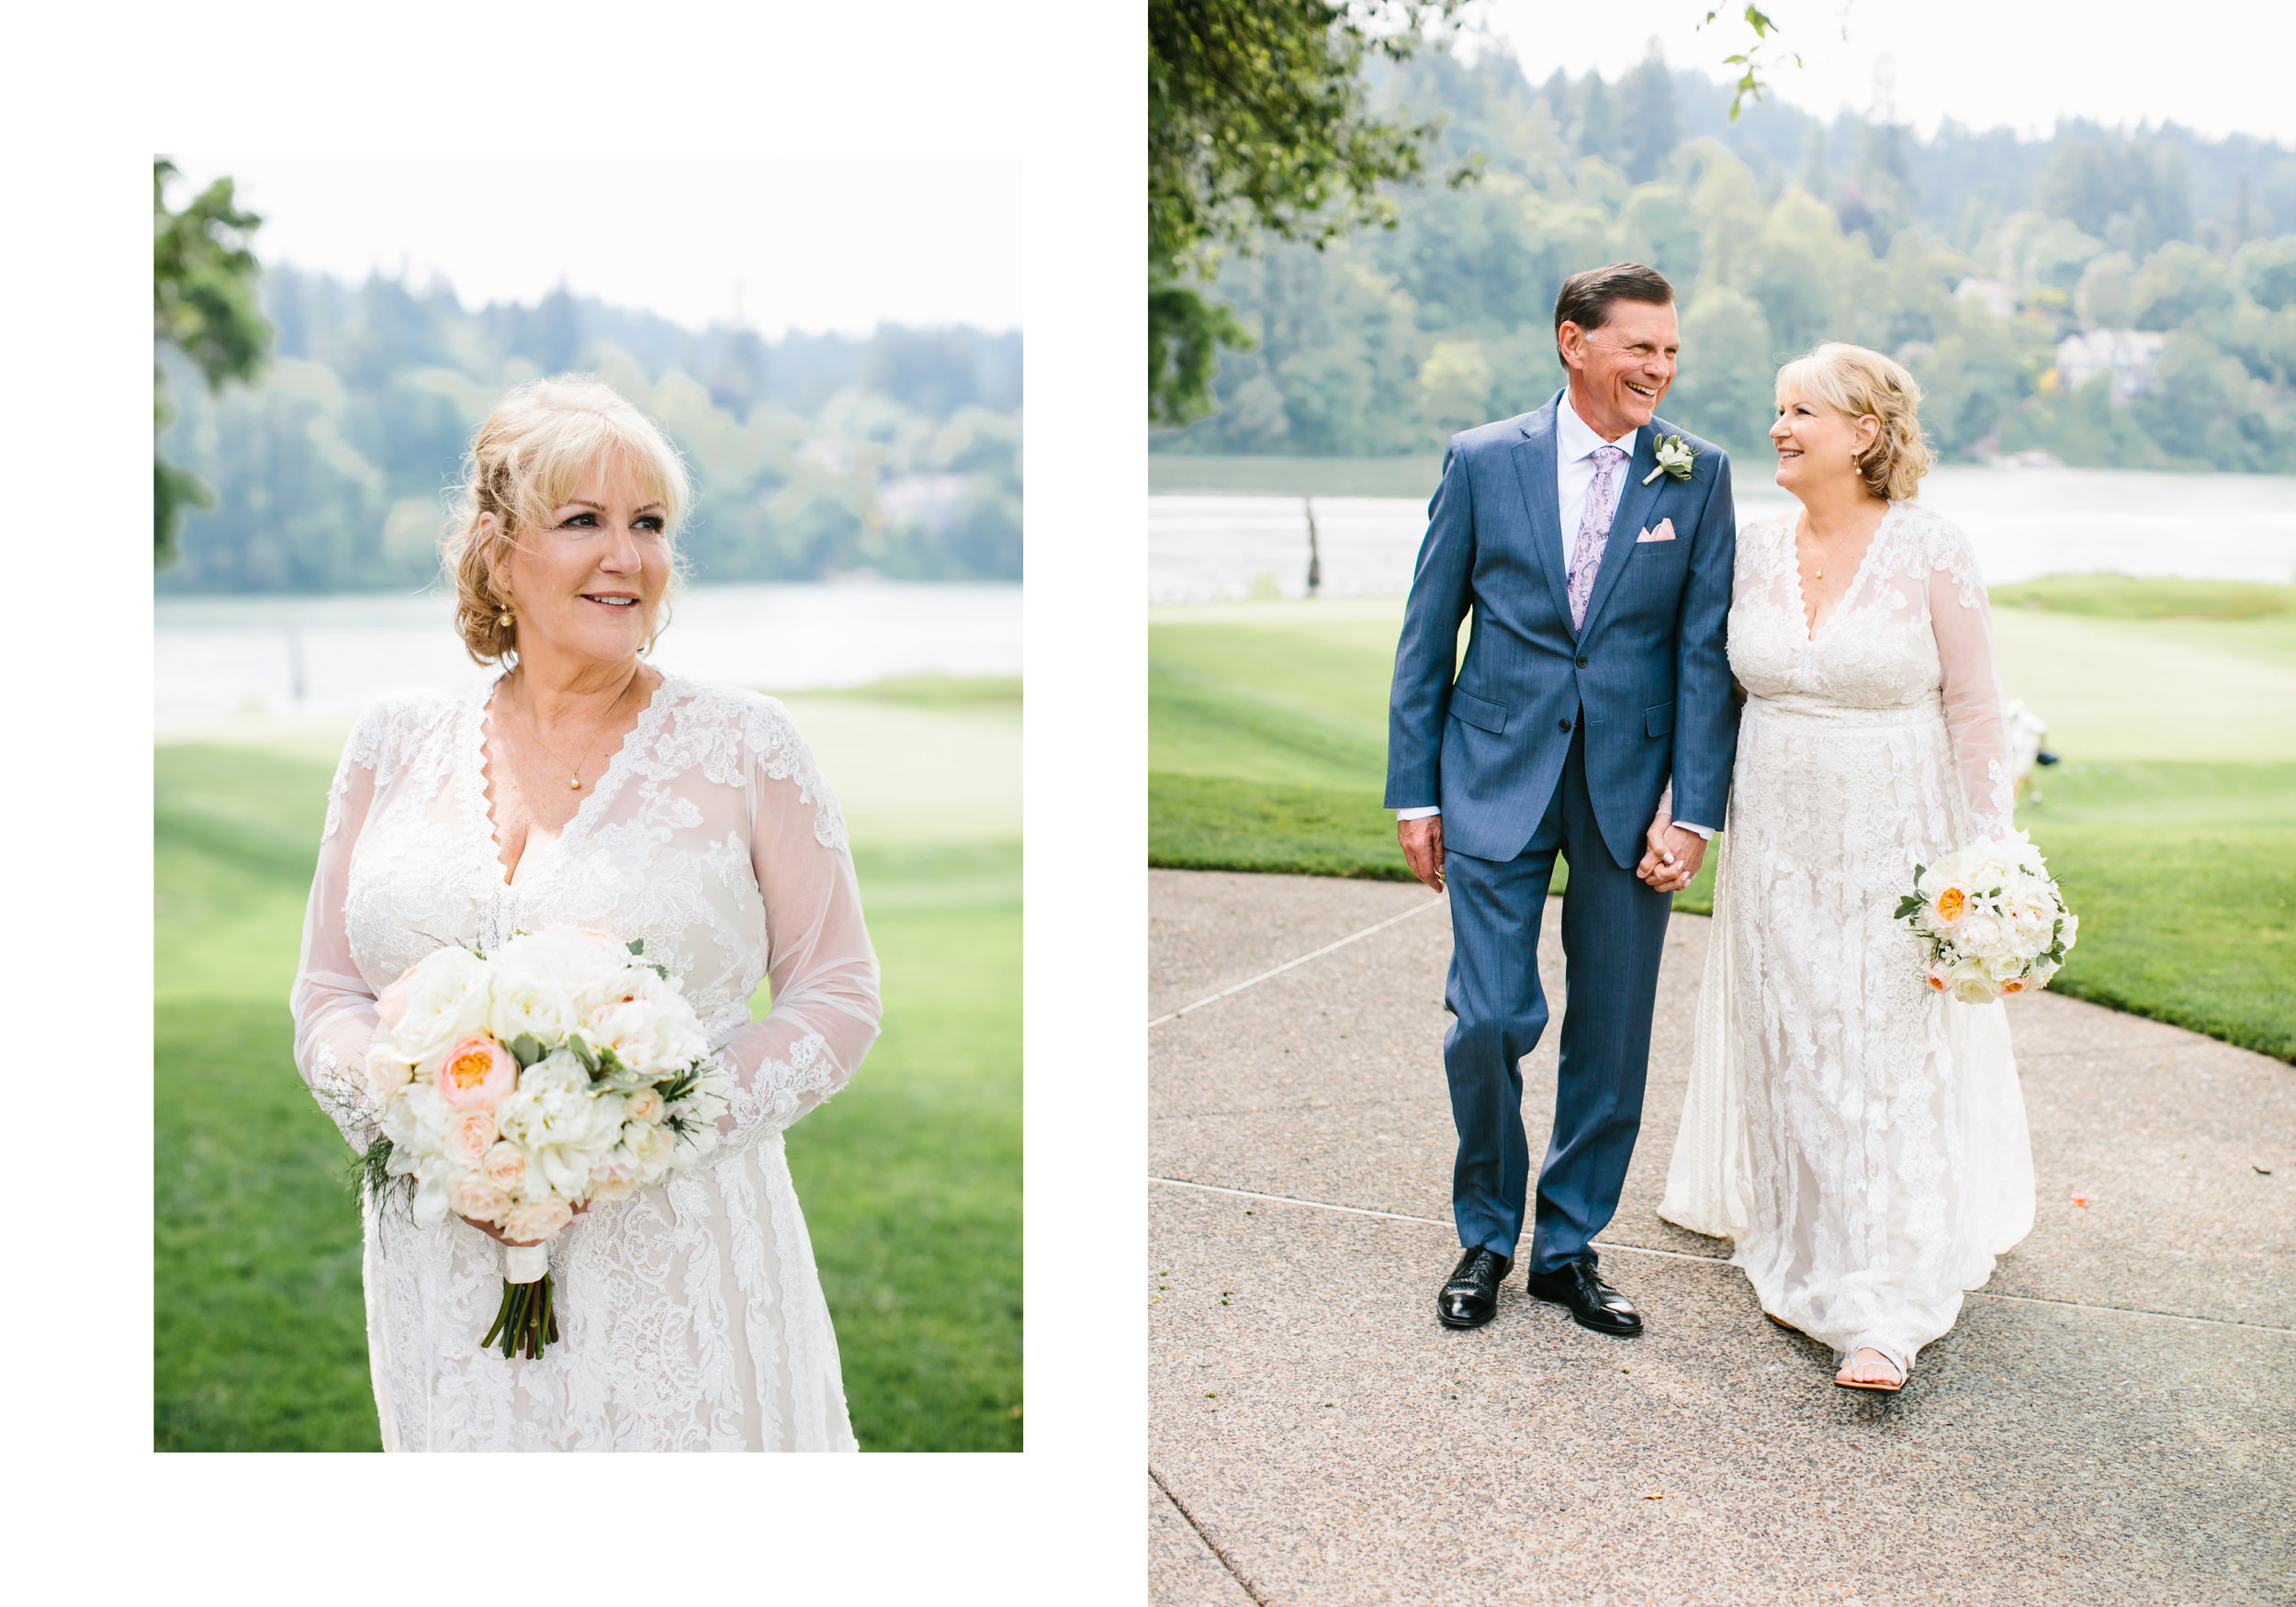 waverly-country-club-portland-wedding-photographer-ashley-courter-0005.JPG